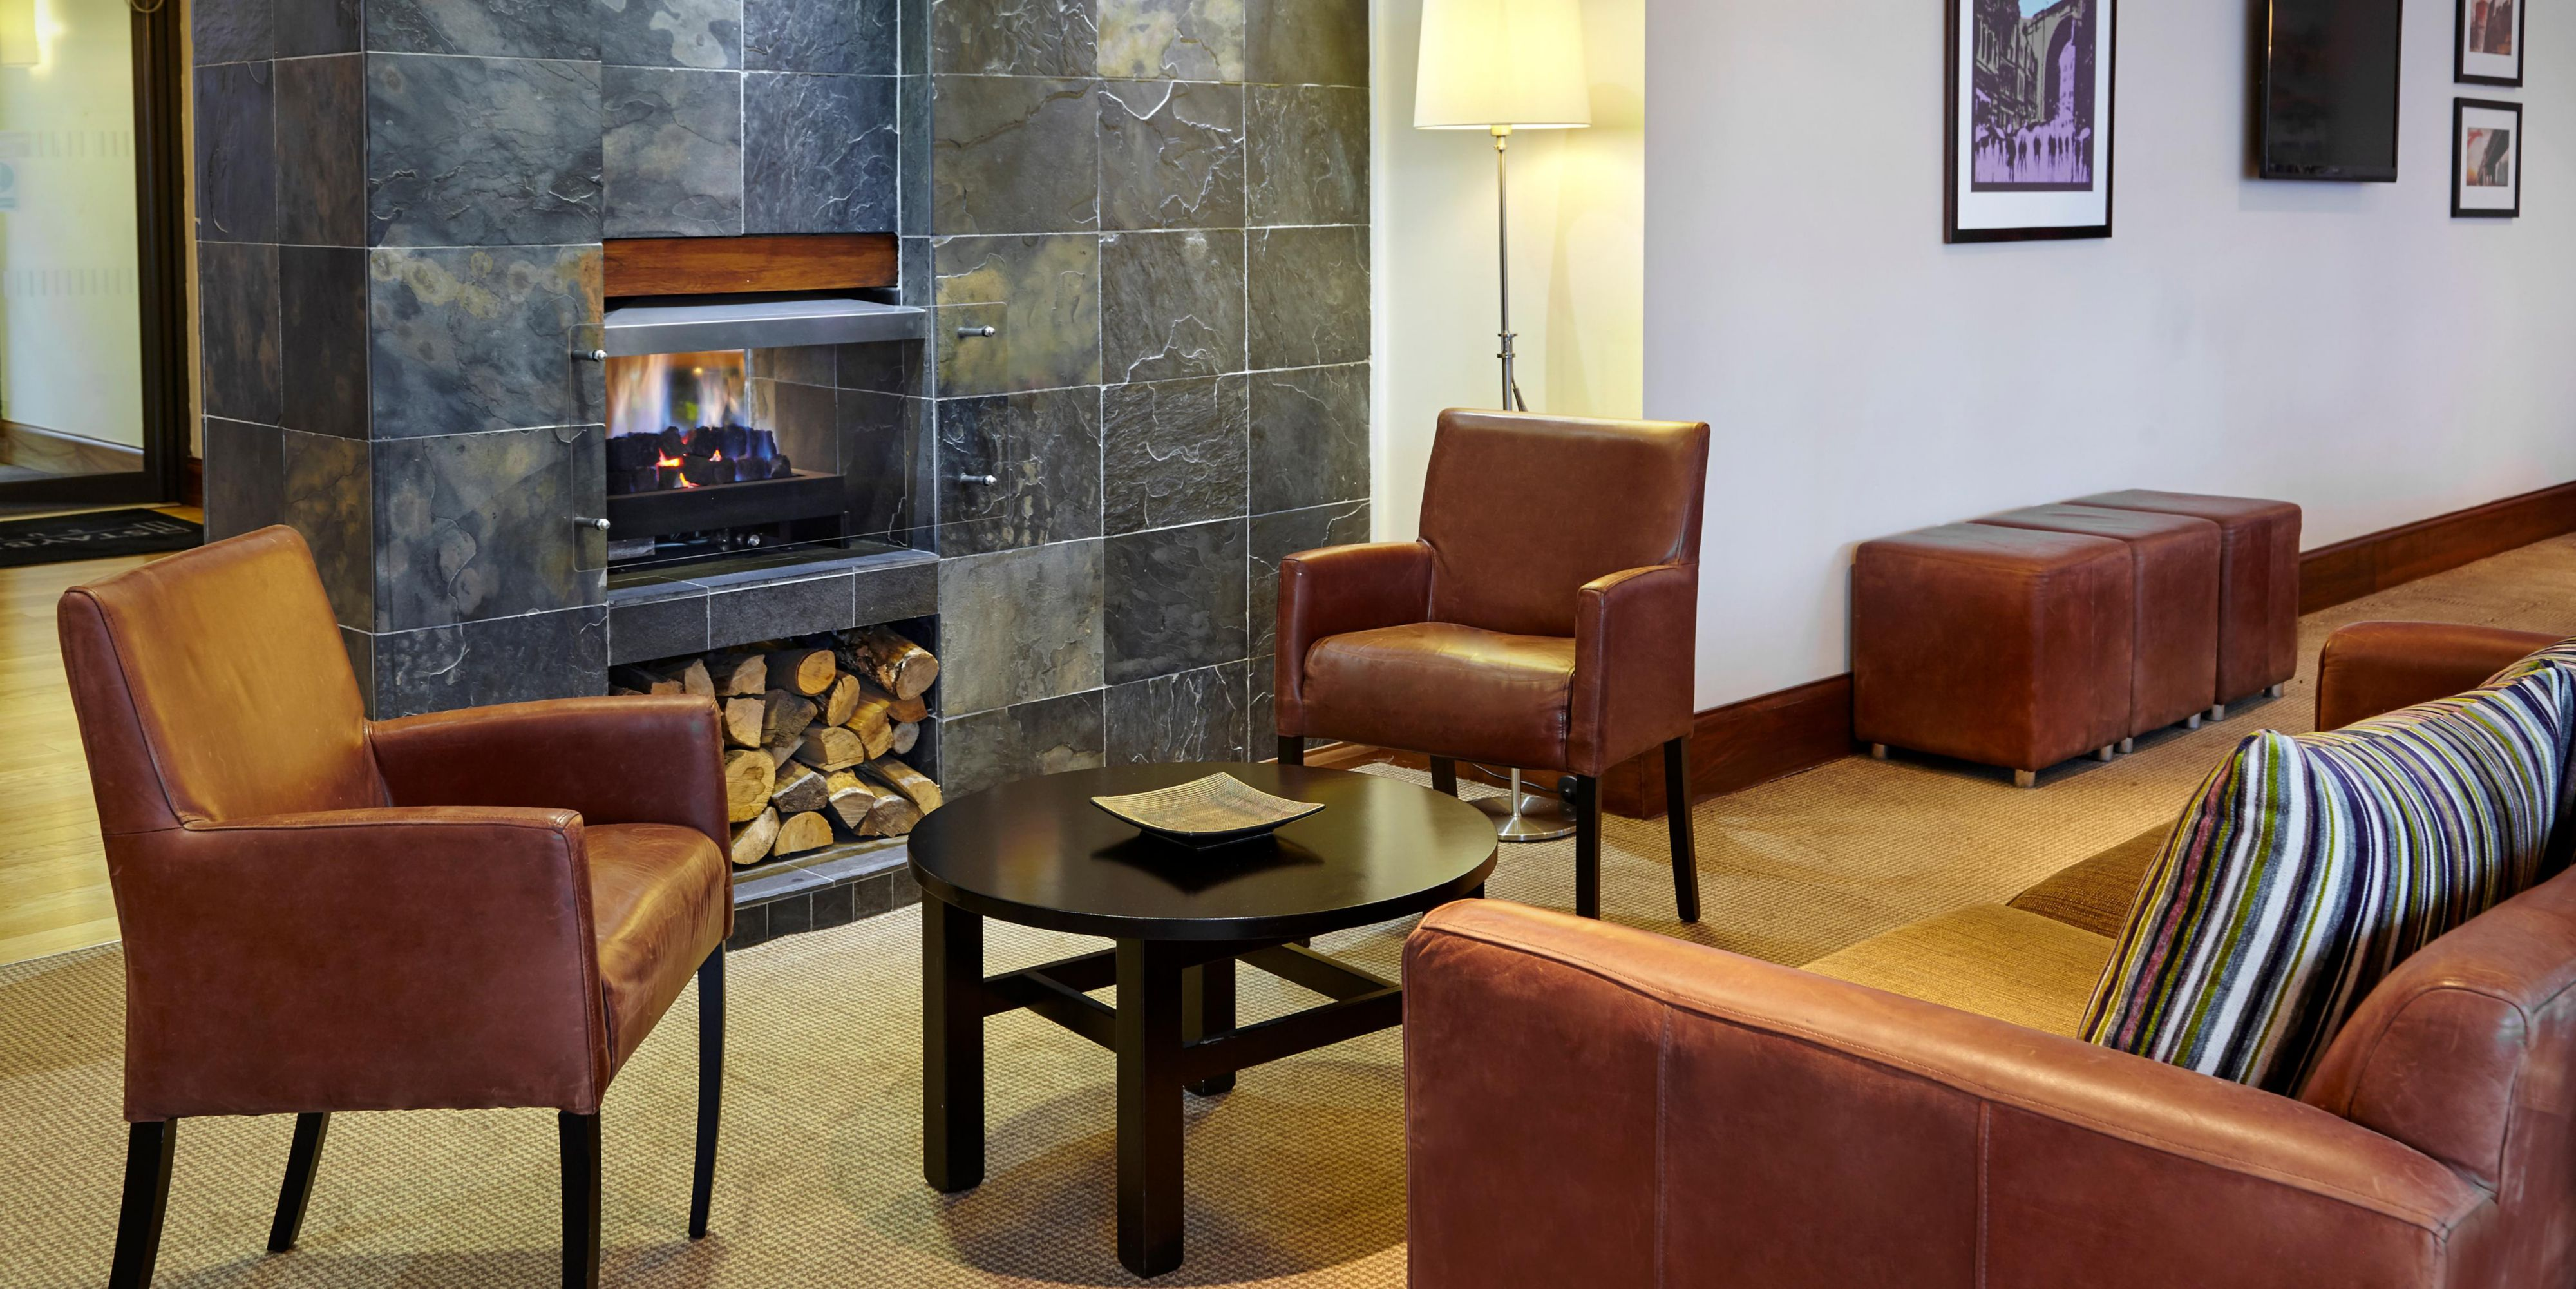 Hotel Lobby Amp Fireplace At Staybridge Suites Newcastle Upon